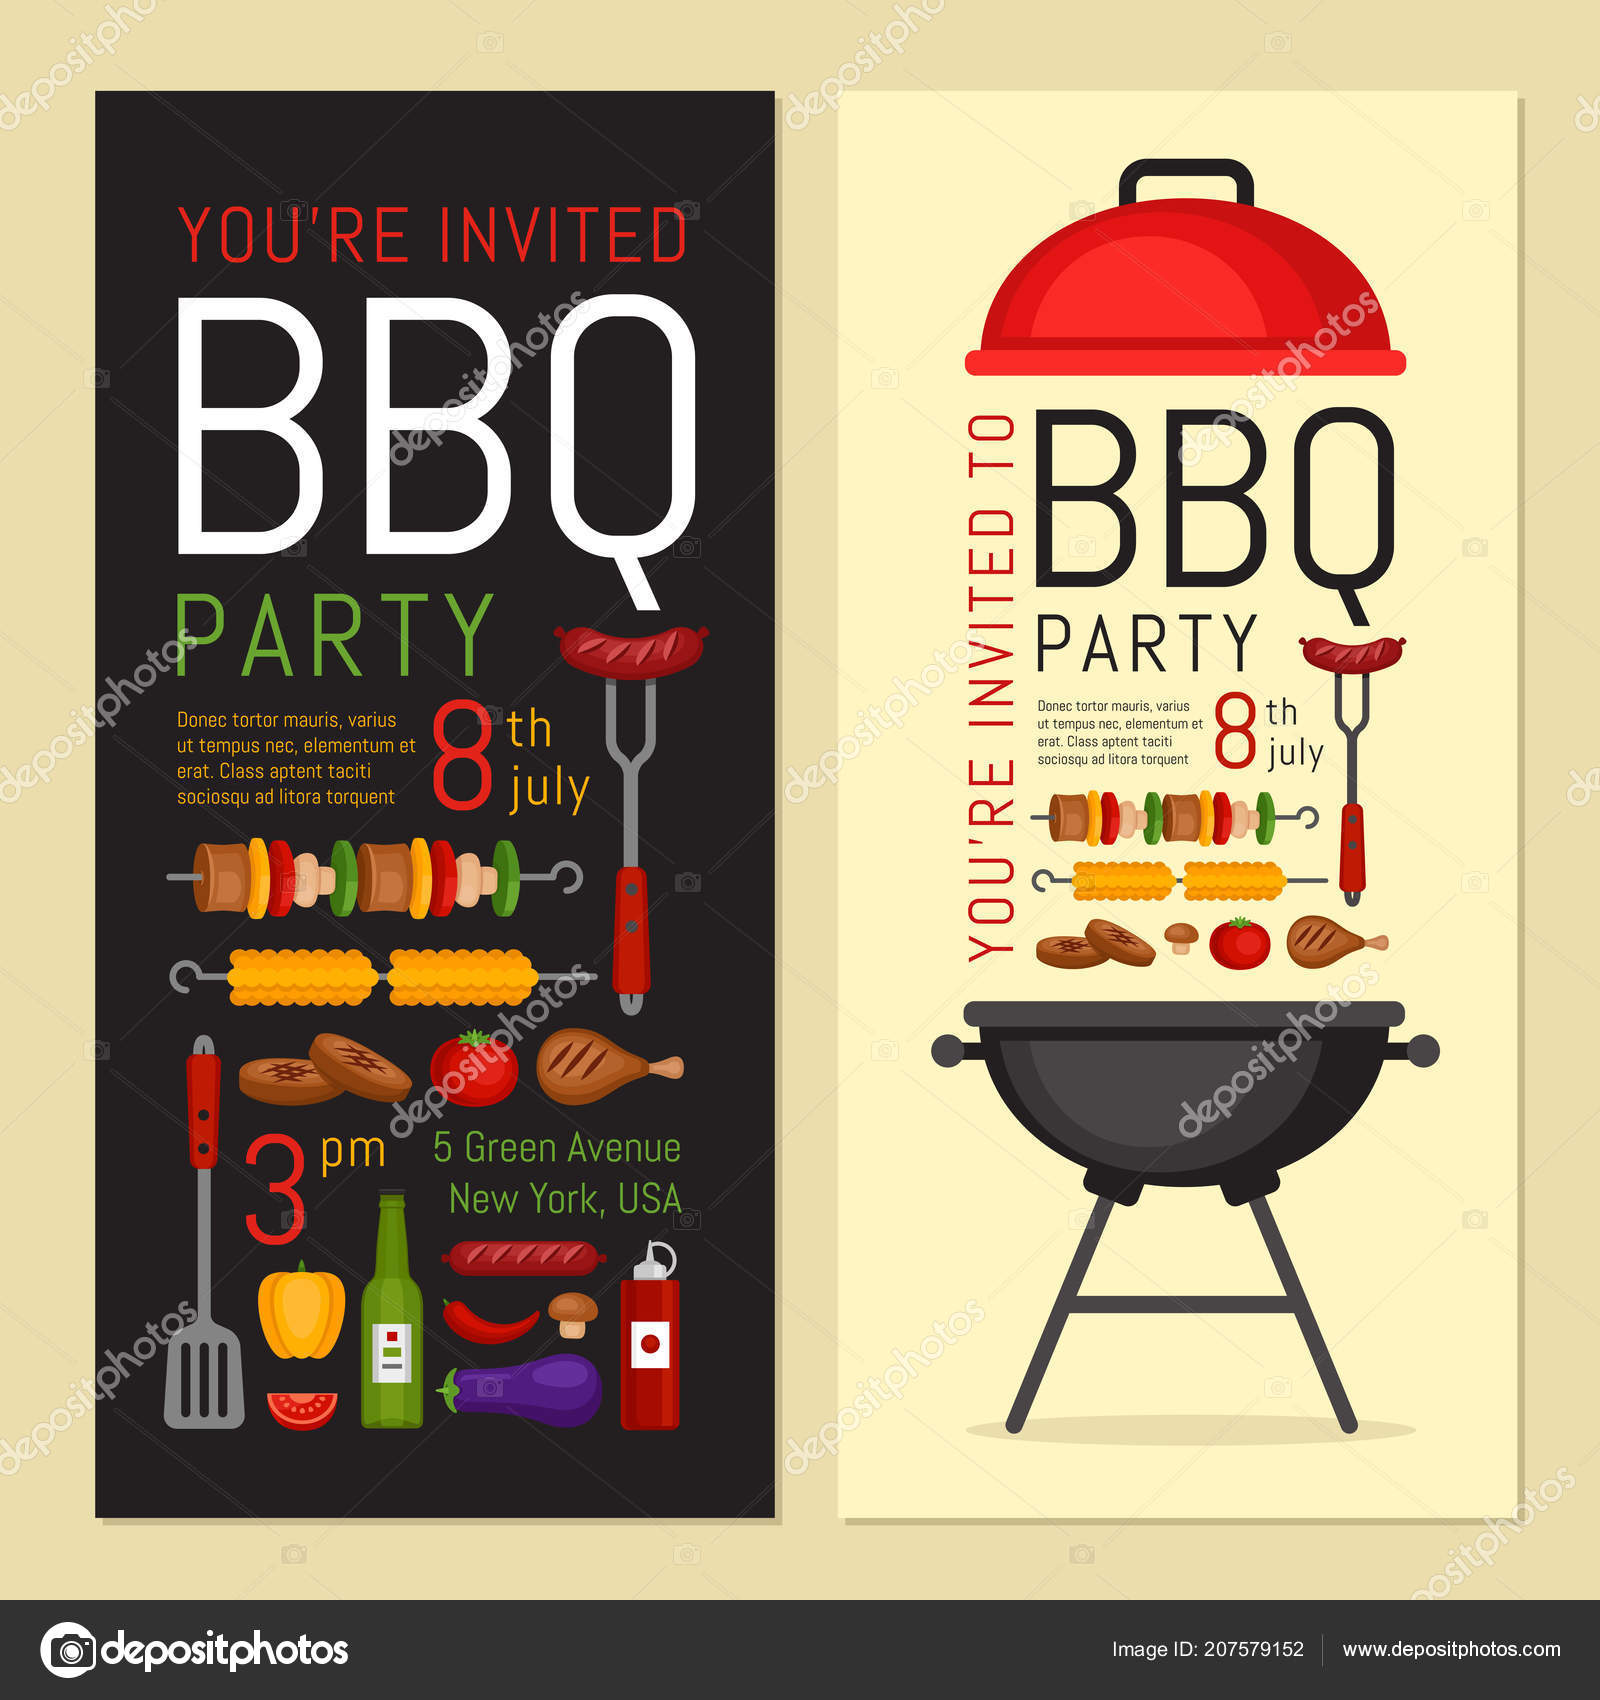 bbq party invitation grill food barbecue poster food flyer flat